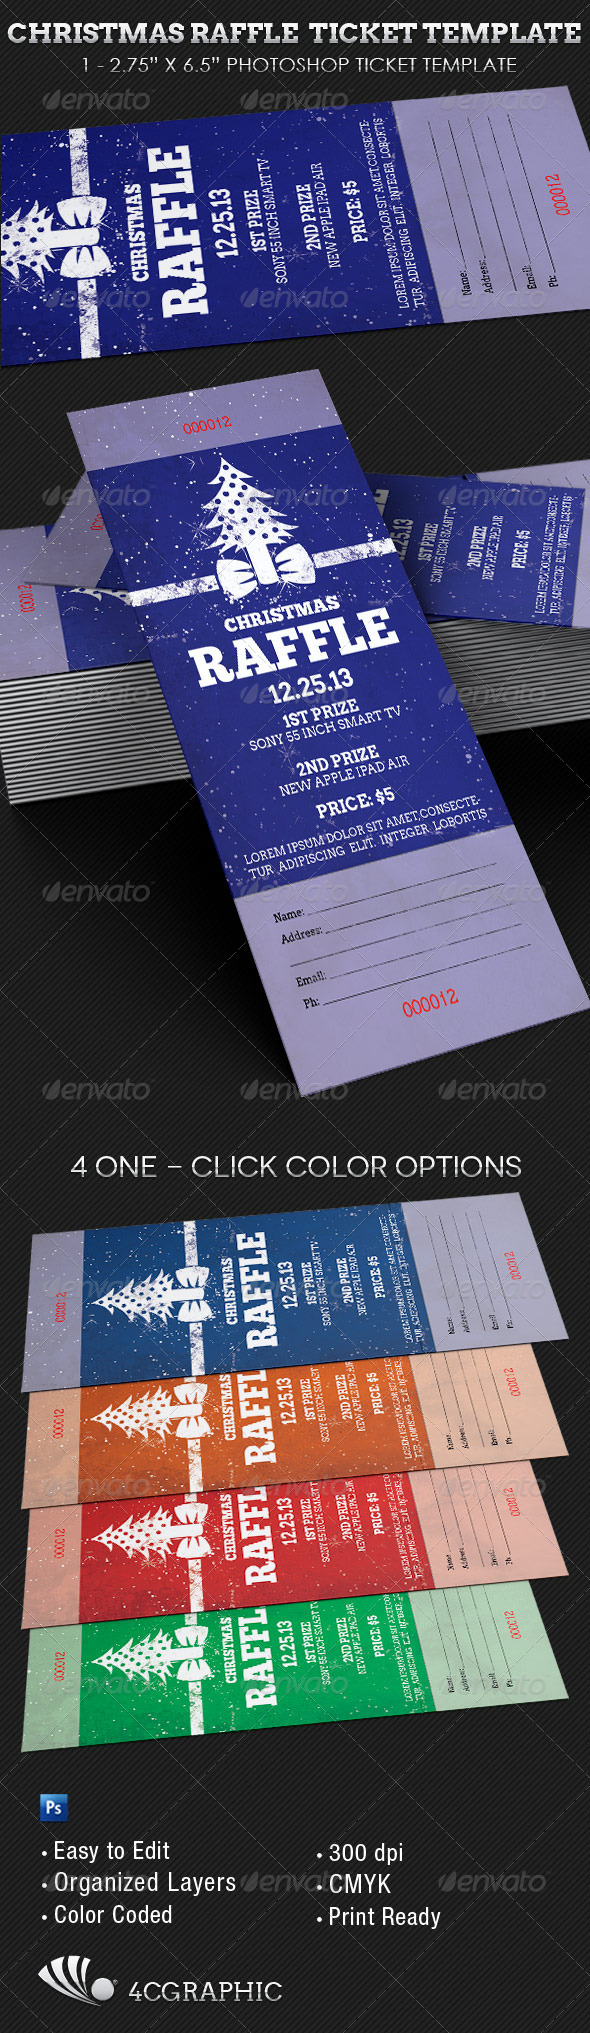 The Christmas Raffle Ticket Template  - Events Flyers